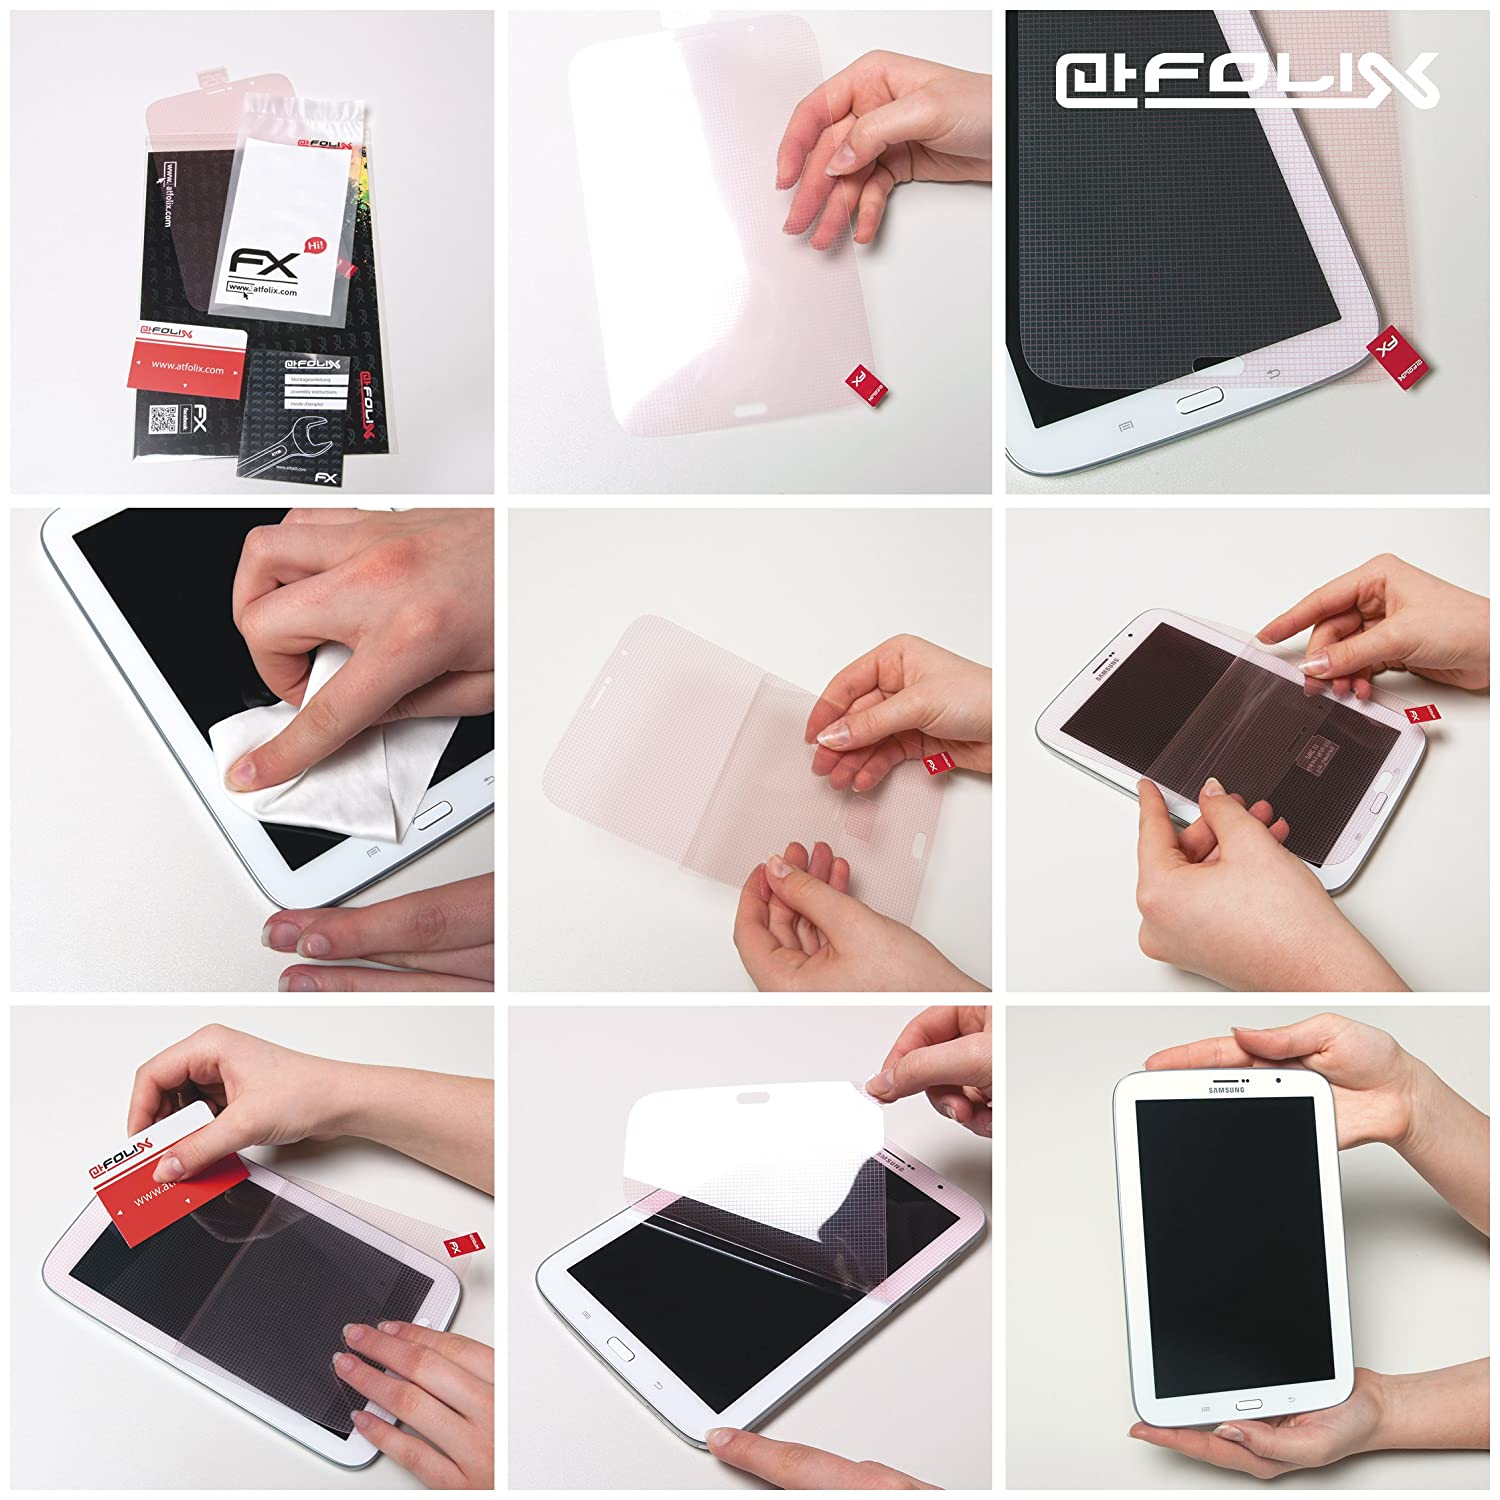 atFoliX Screen Protection Film compatible with Huion GT-191 Screen Protector ultra-clear FX Protective Film 2X